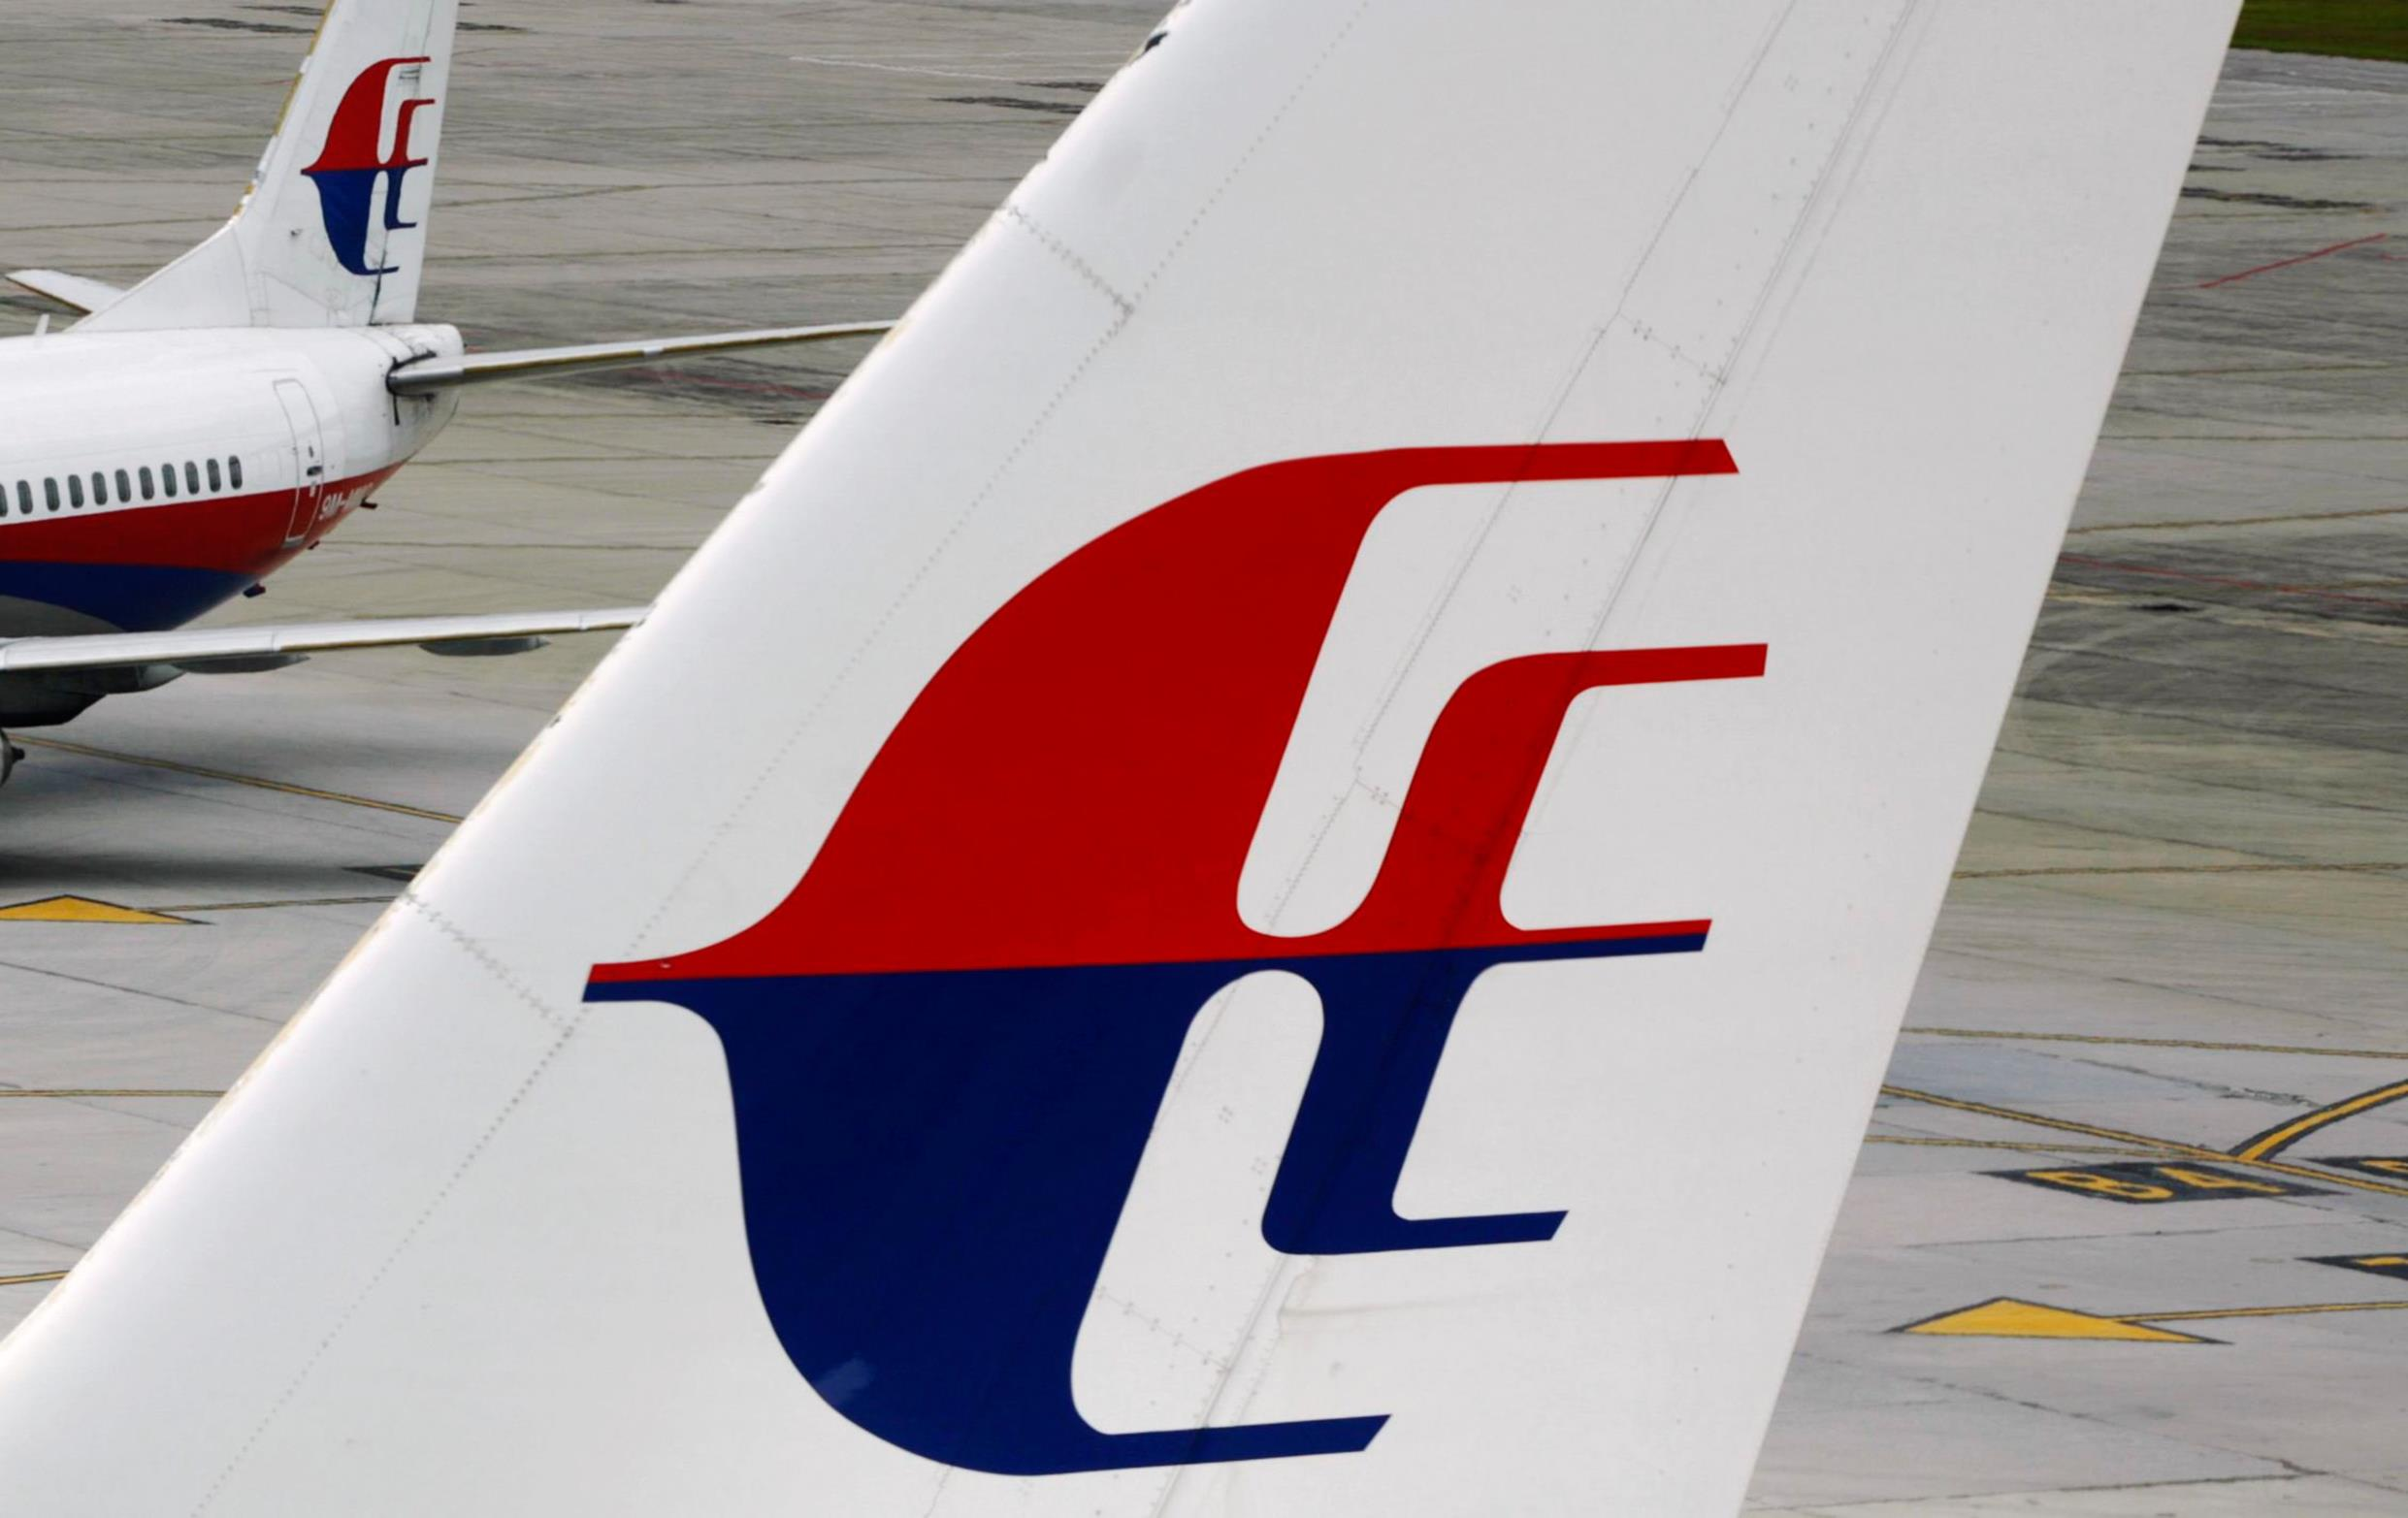 Image: The logo of Malaysia Airlines is seen on two aircraft on the tarmac at Kuala Lumpur International Airport in Sepang